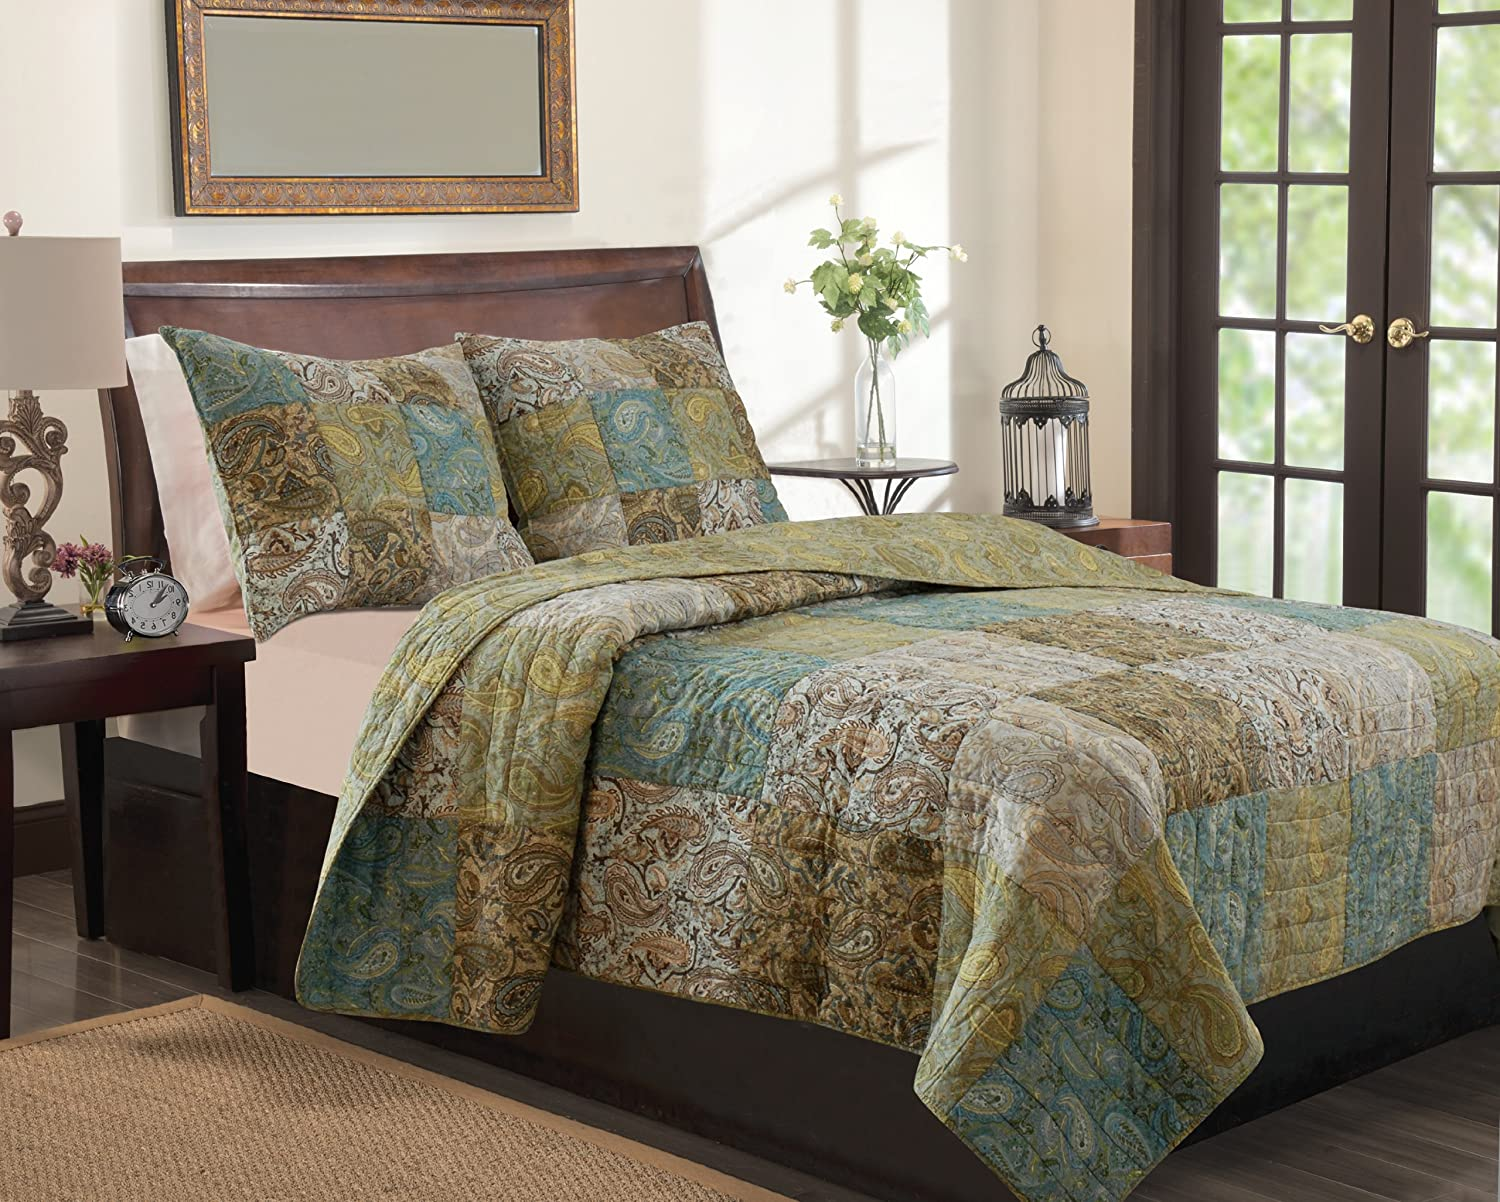 Greenland Home 3-Piece Vintage Paisley Quilt Set, King